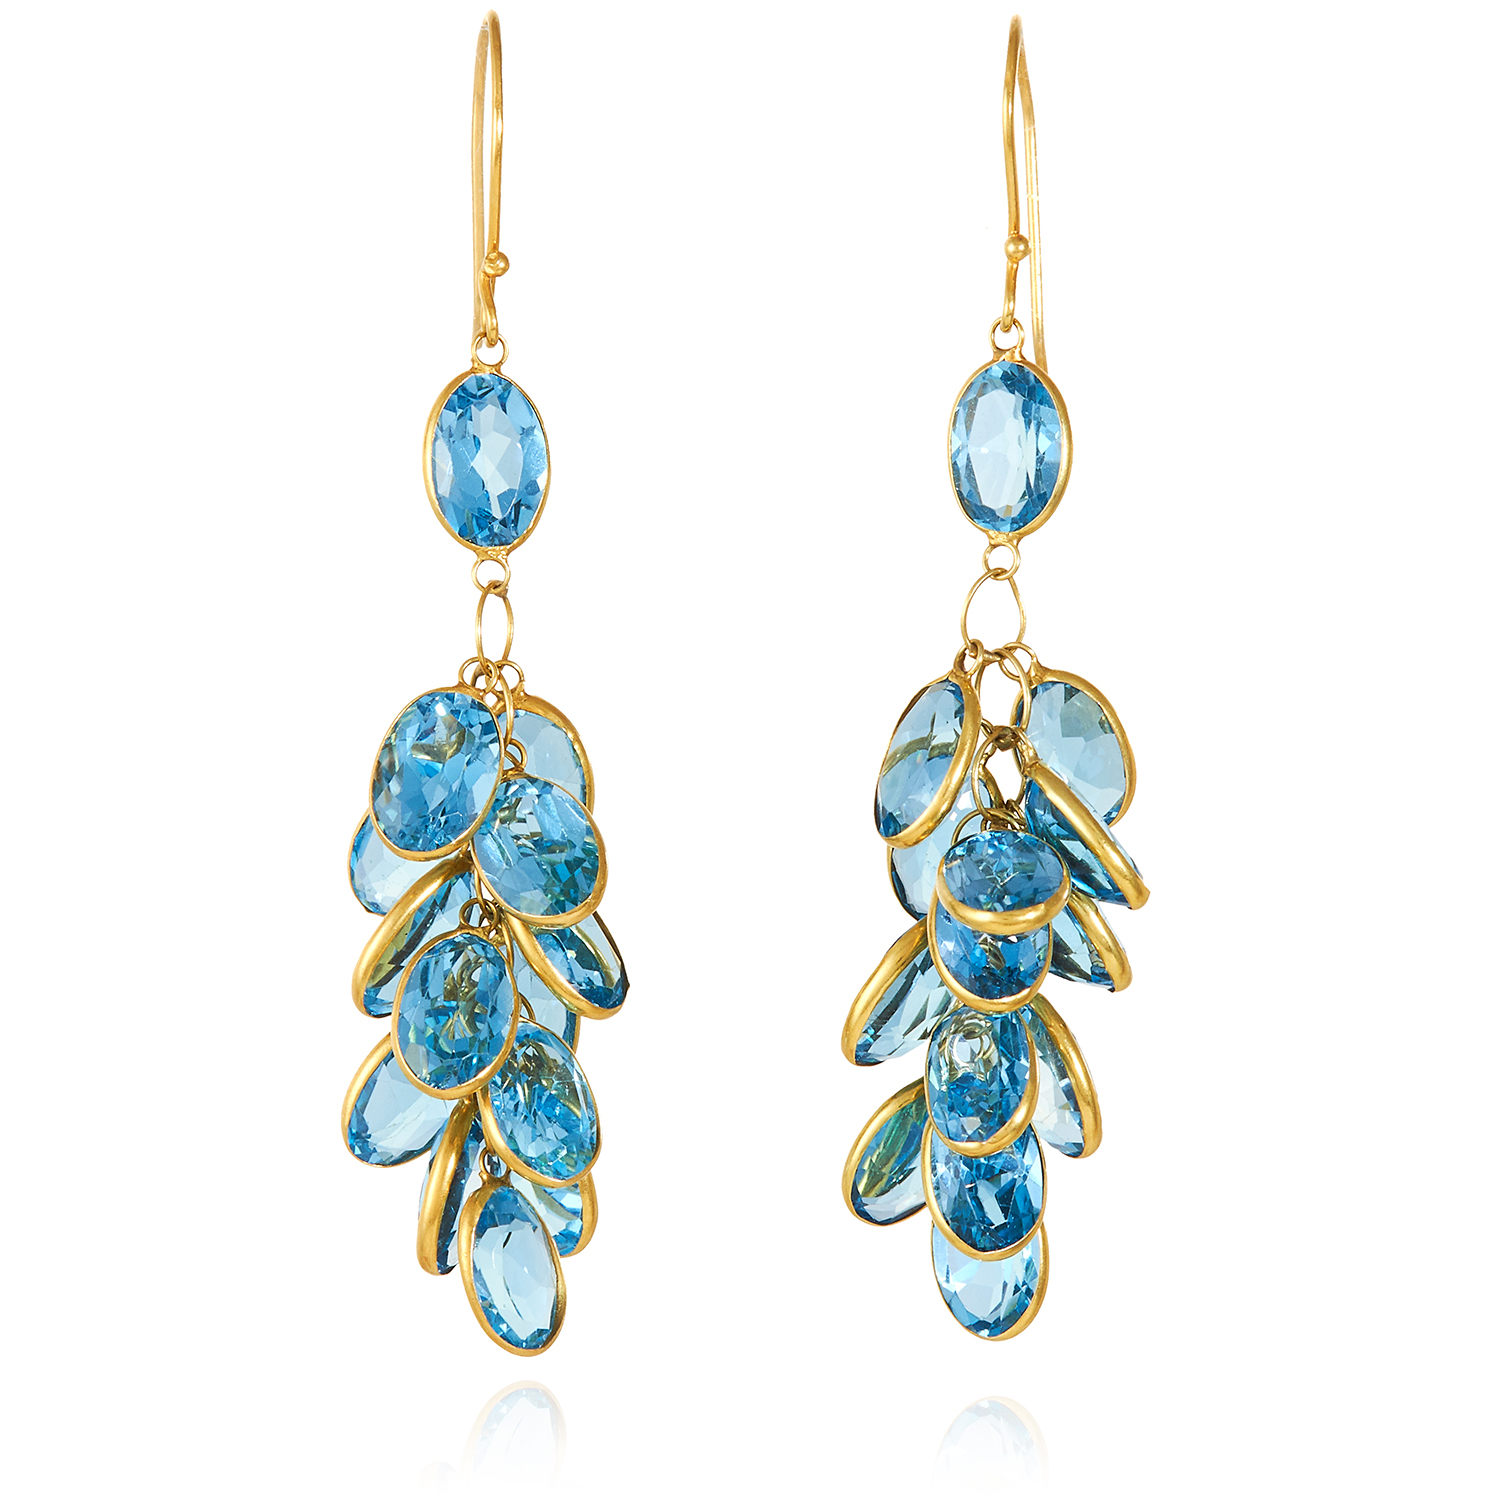 A PAIR OF TOPAZ CLUSTER EARRINGS in 14ct yellow gold, each formed of a cluster of oval cut topaz,